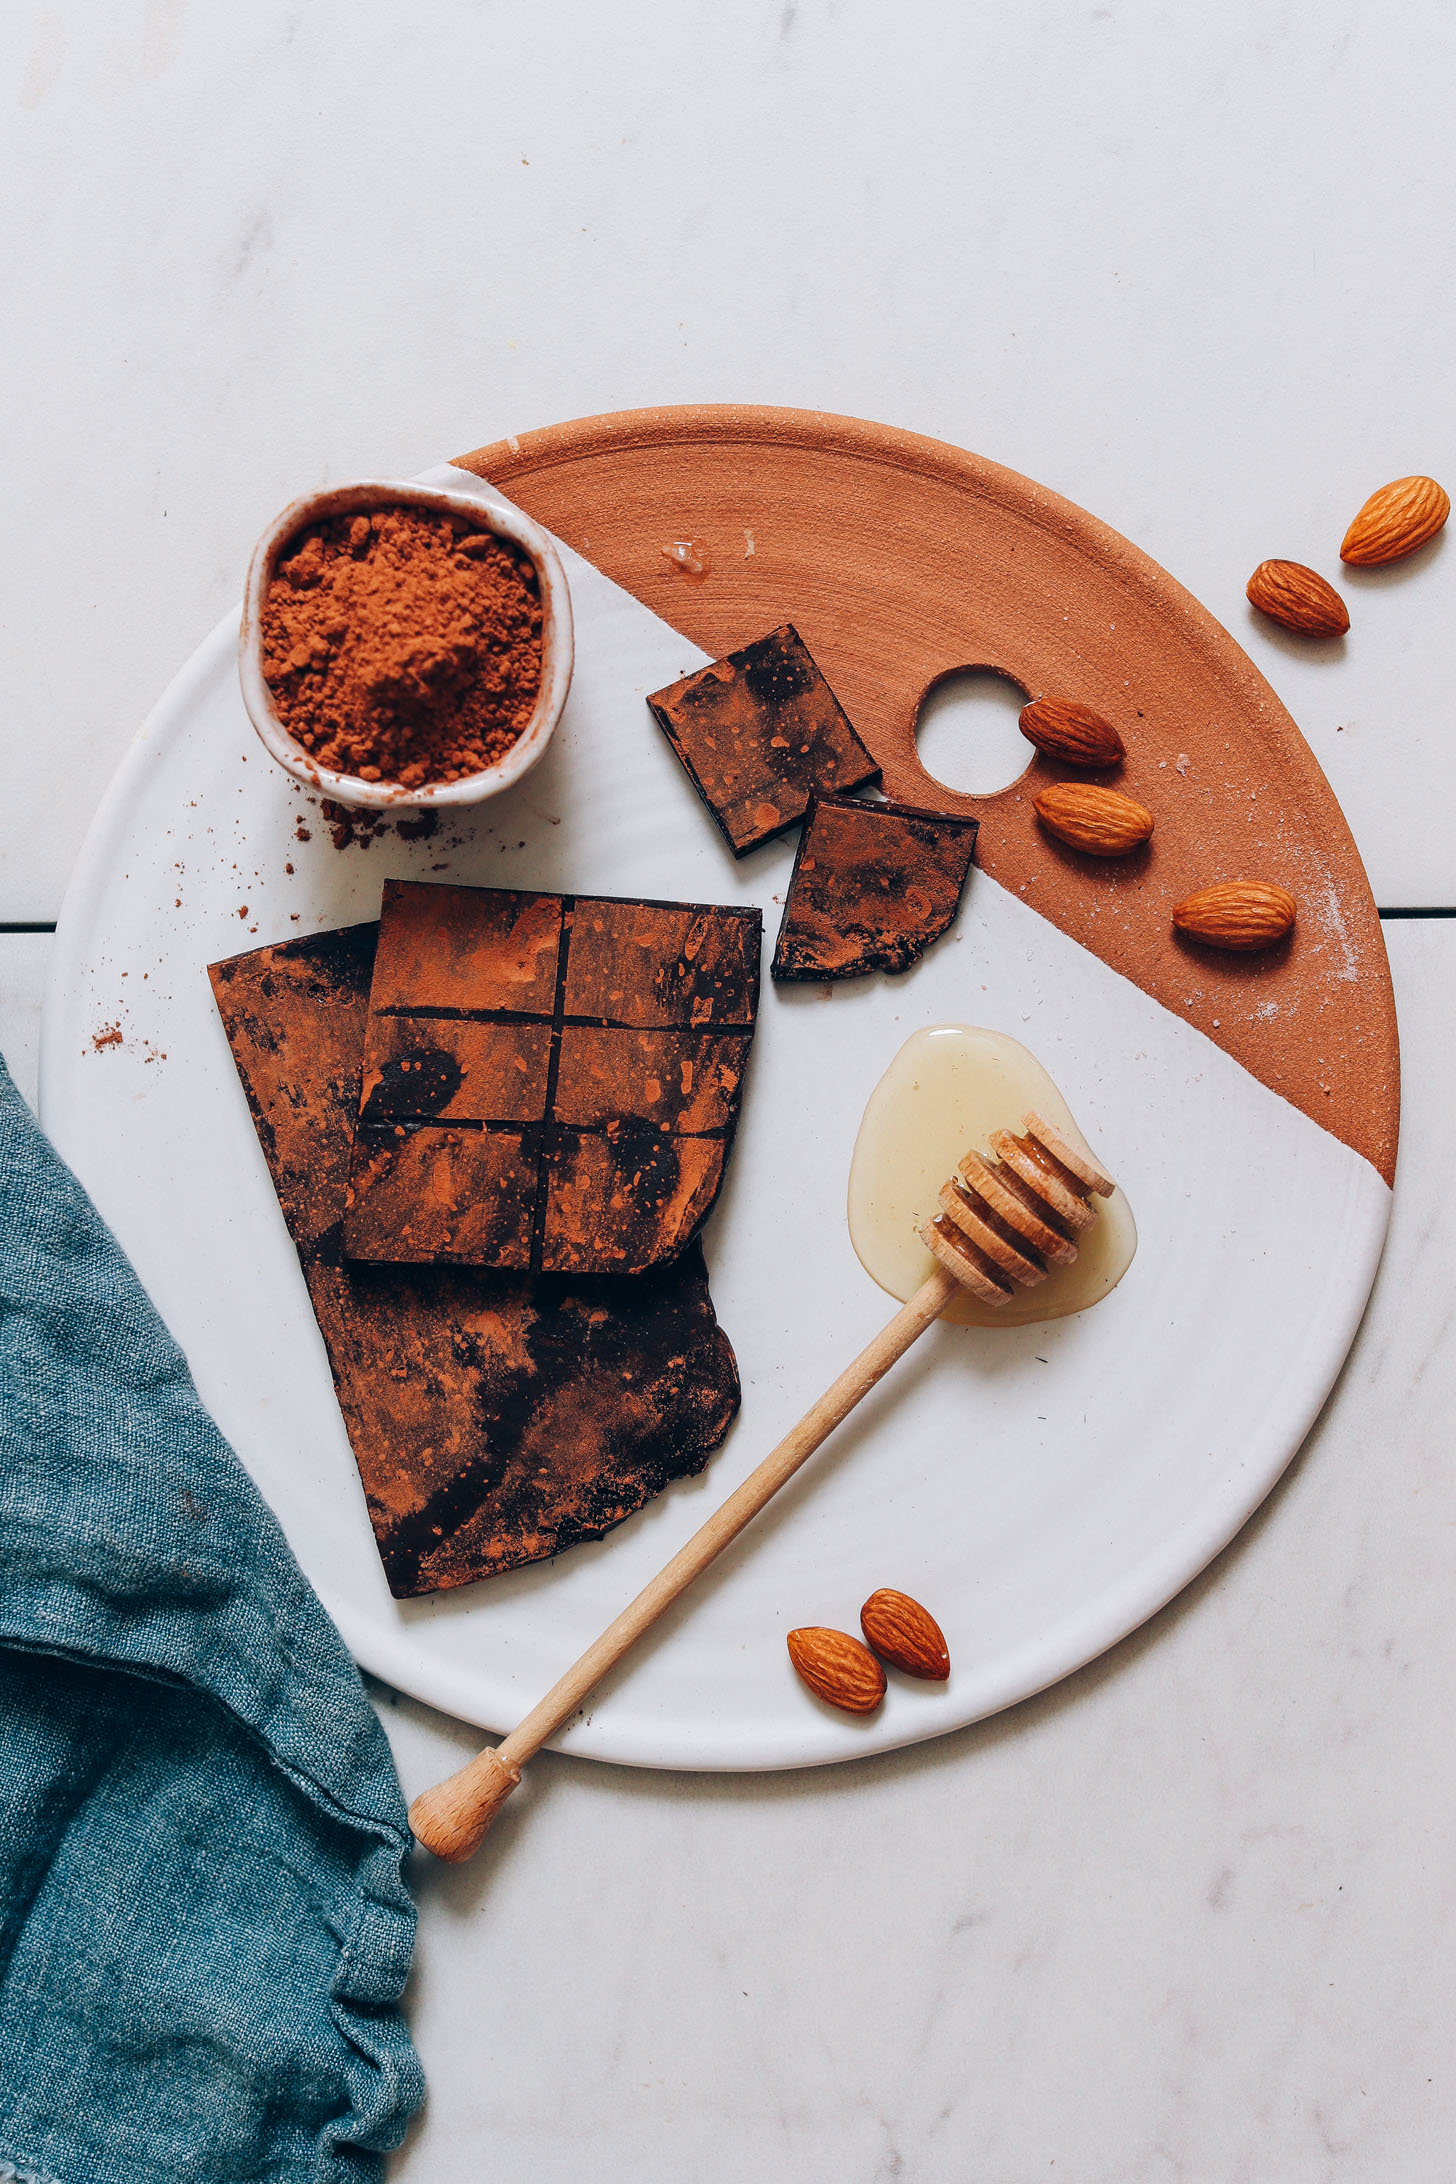 Ceramic and clay tray with almonds, cacao powder, and homemade Honey Mama's Bars